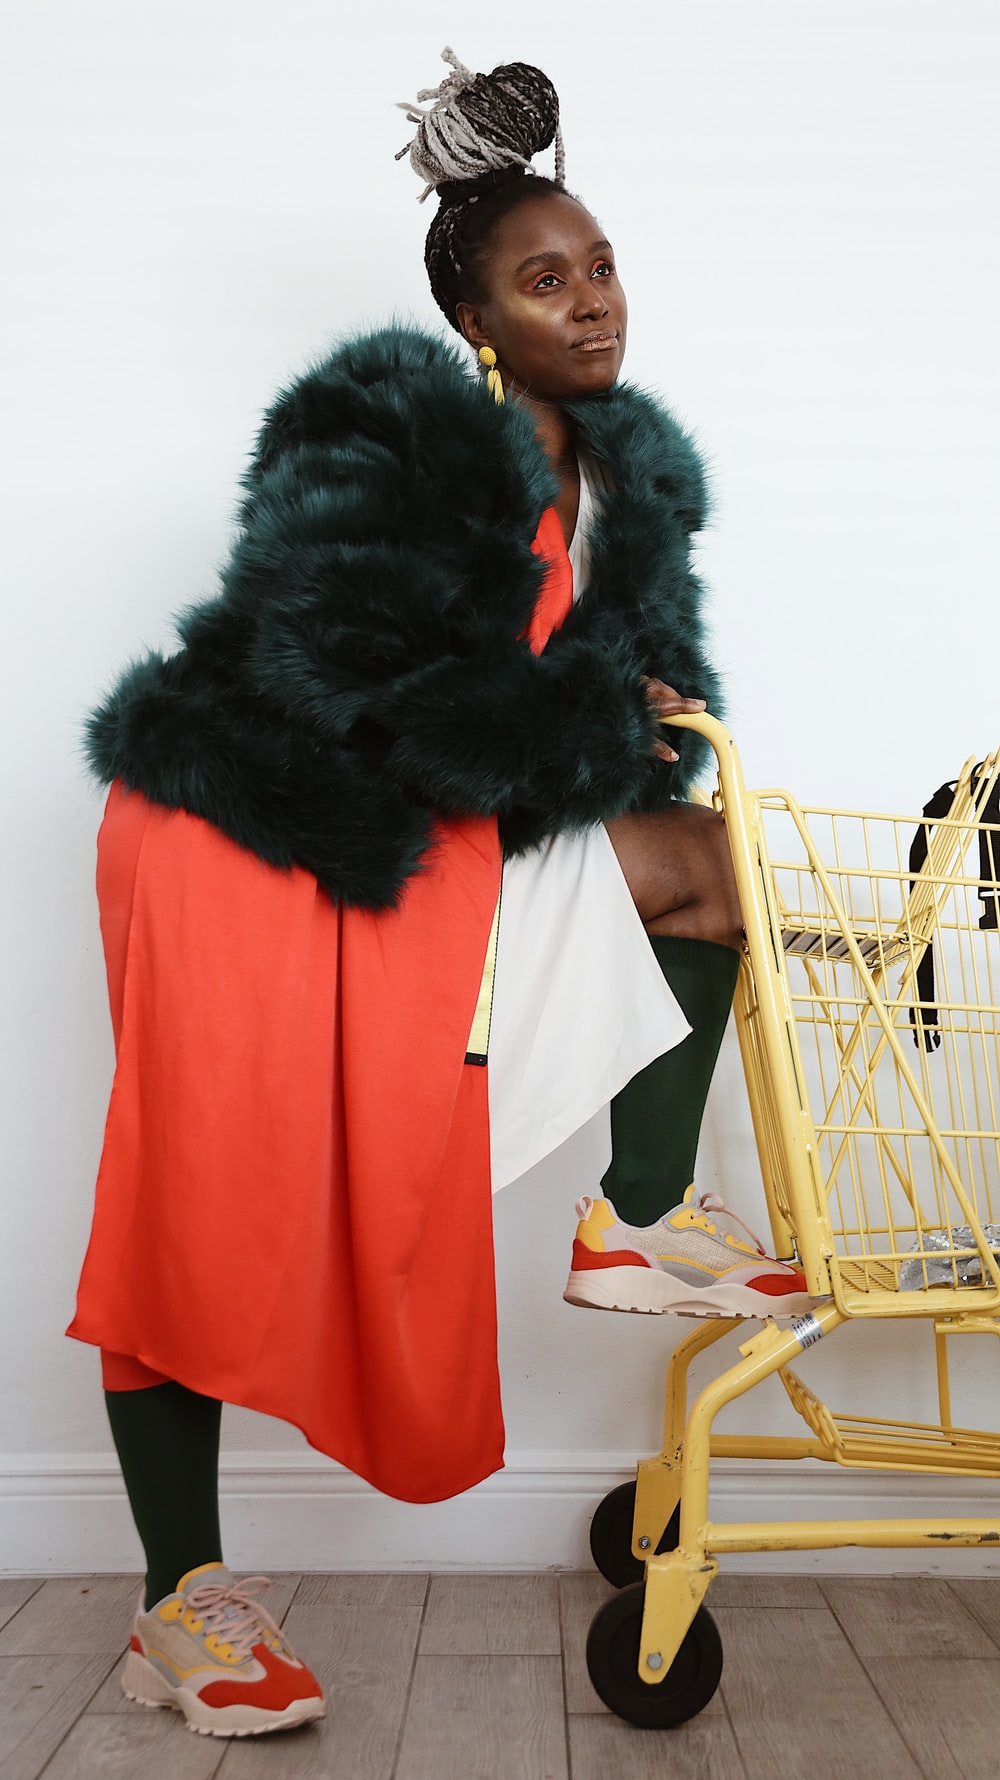 woman leaning on yellow grocery cart